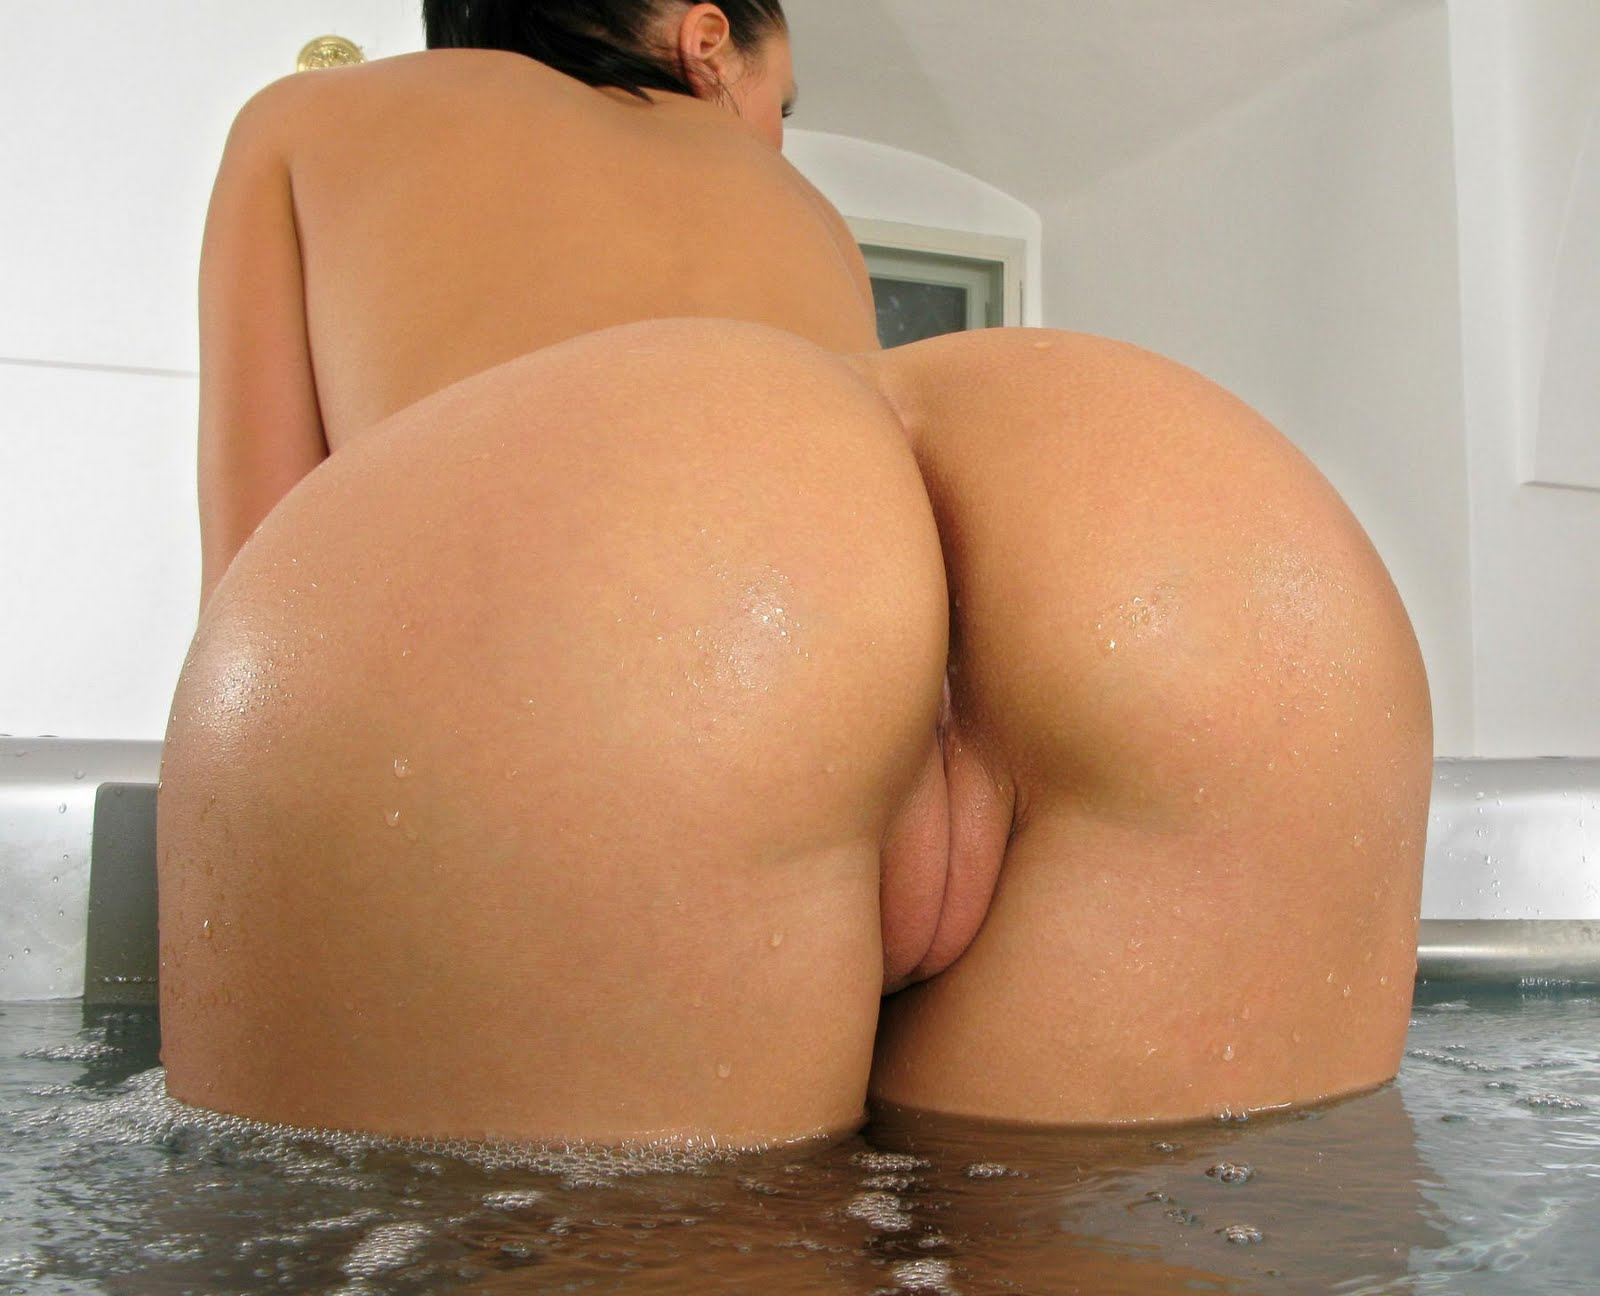 Girl big ass naked